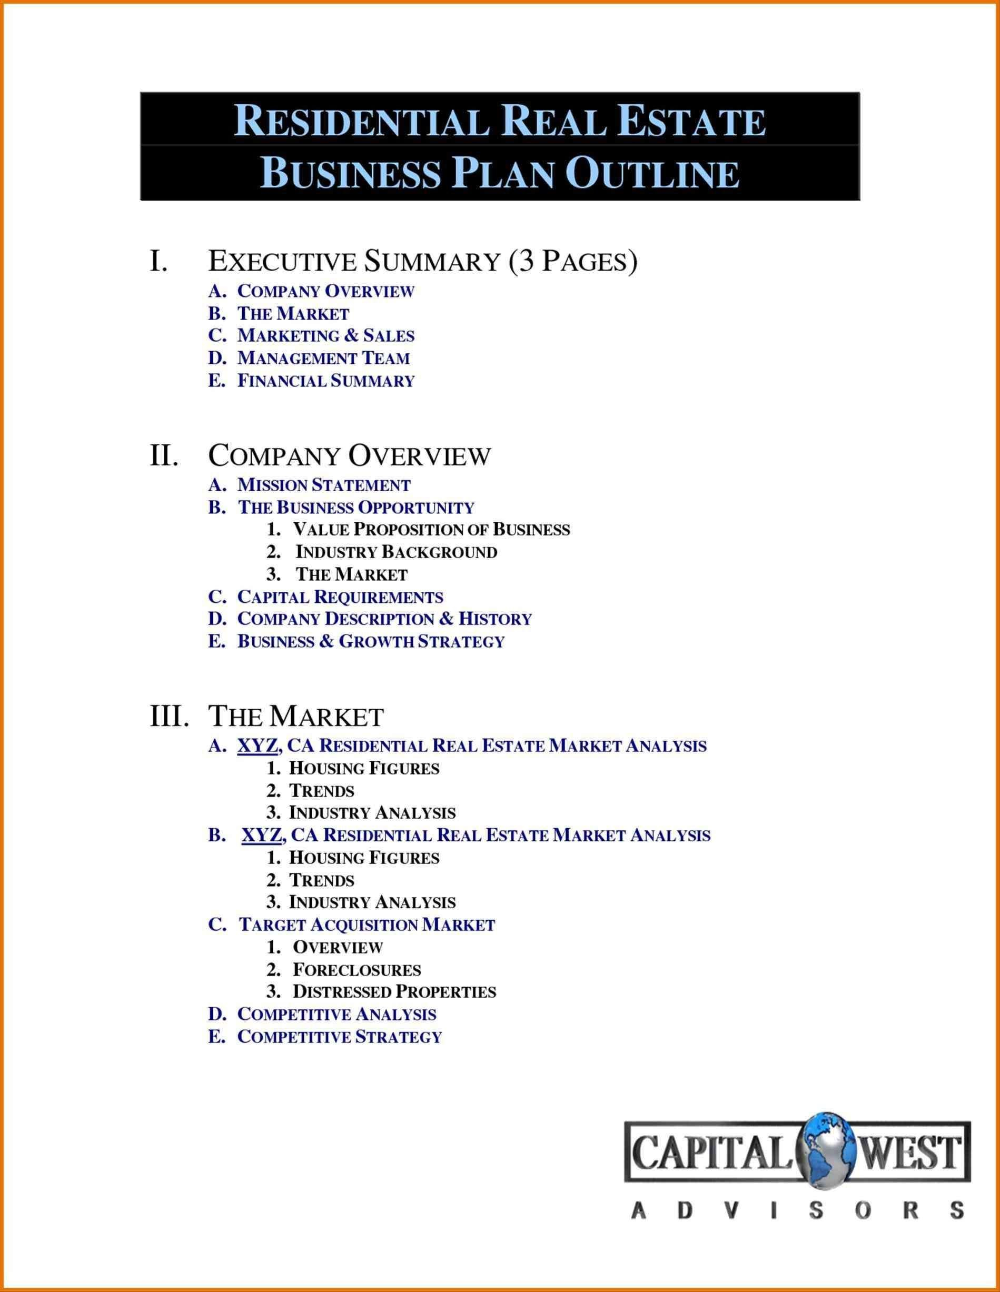 Real Estate Investment Partnership Business Plan Template Intended For Real Estate Business Plan Template Free Real Estate Business Plan Business Plan Outline